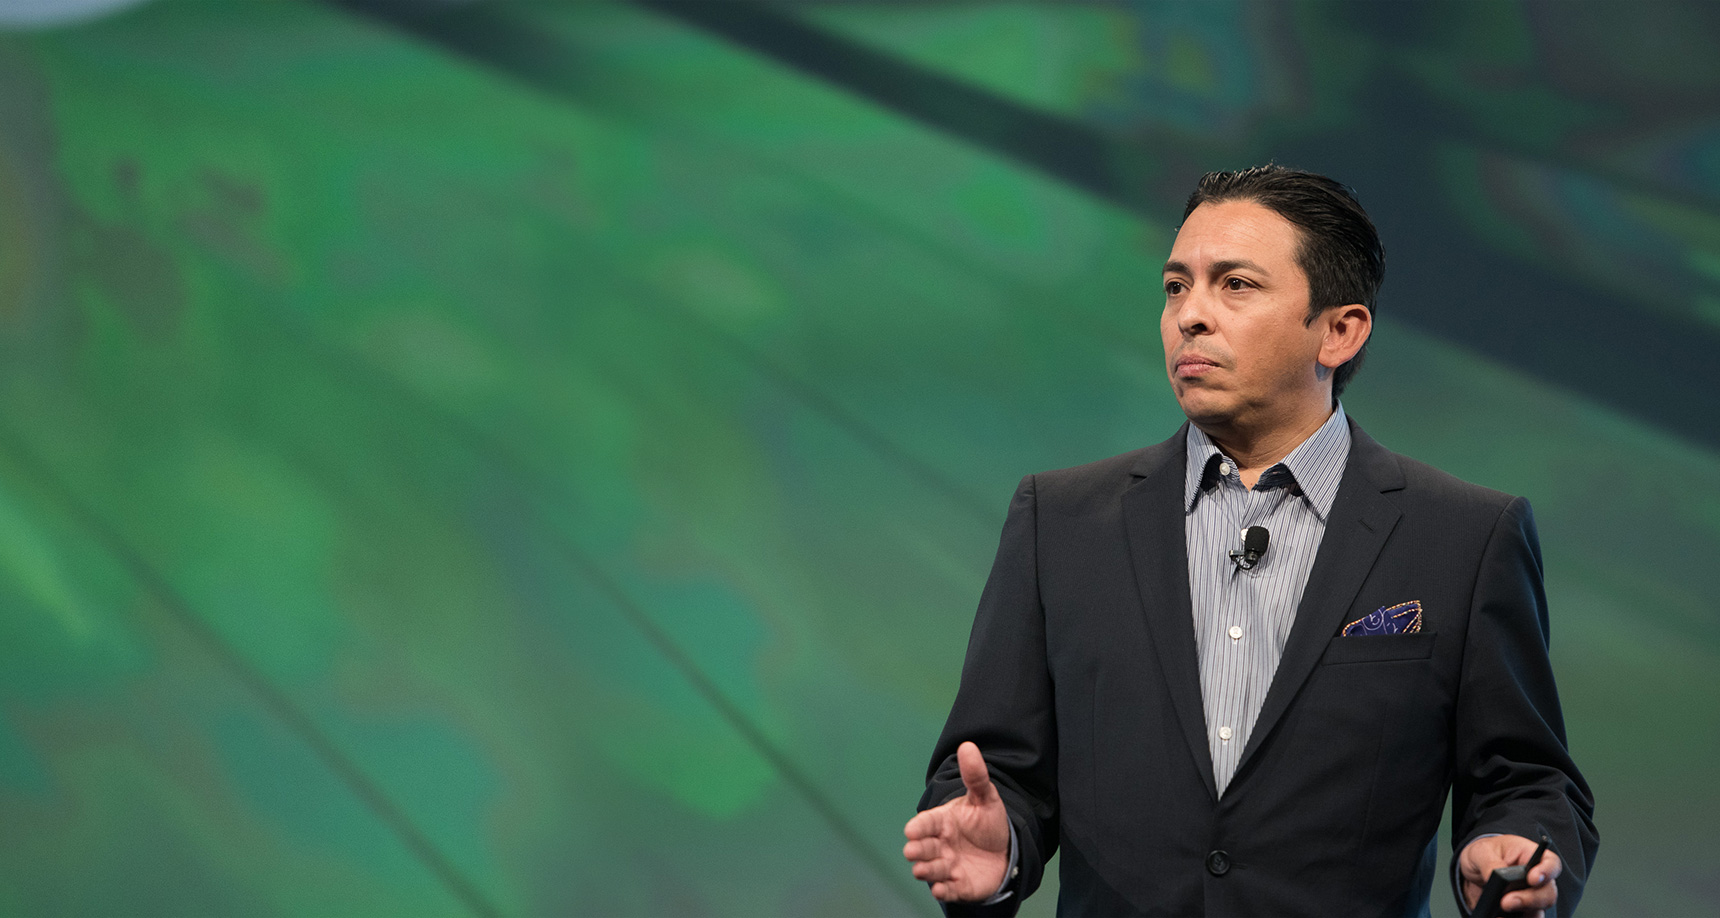 Brian Solis, The Rise of Digital Influence